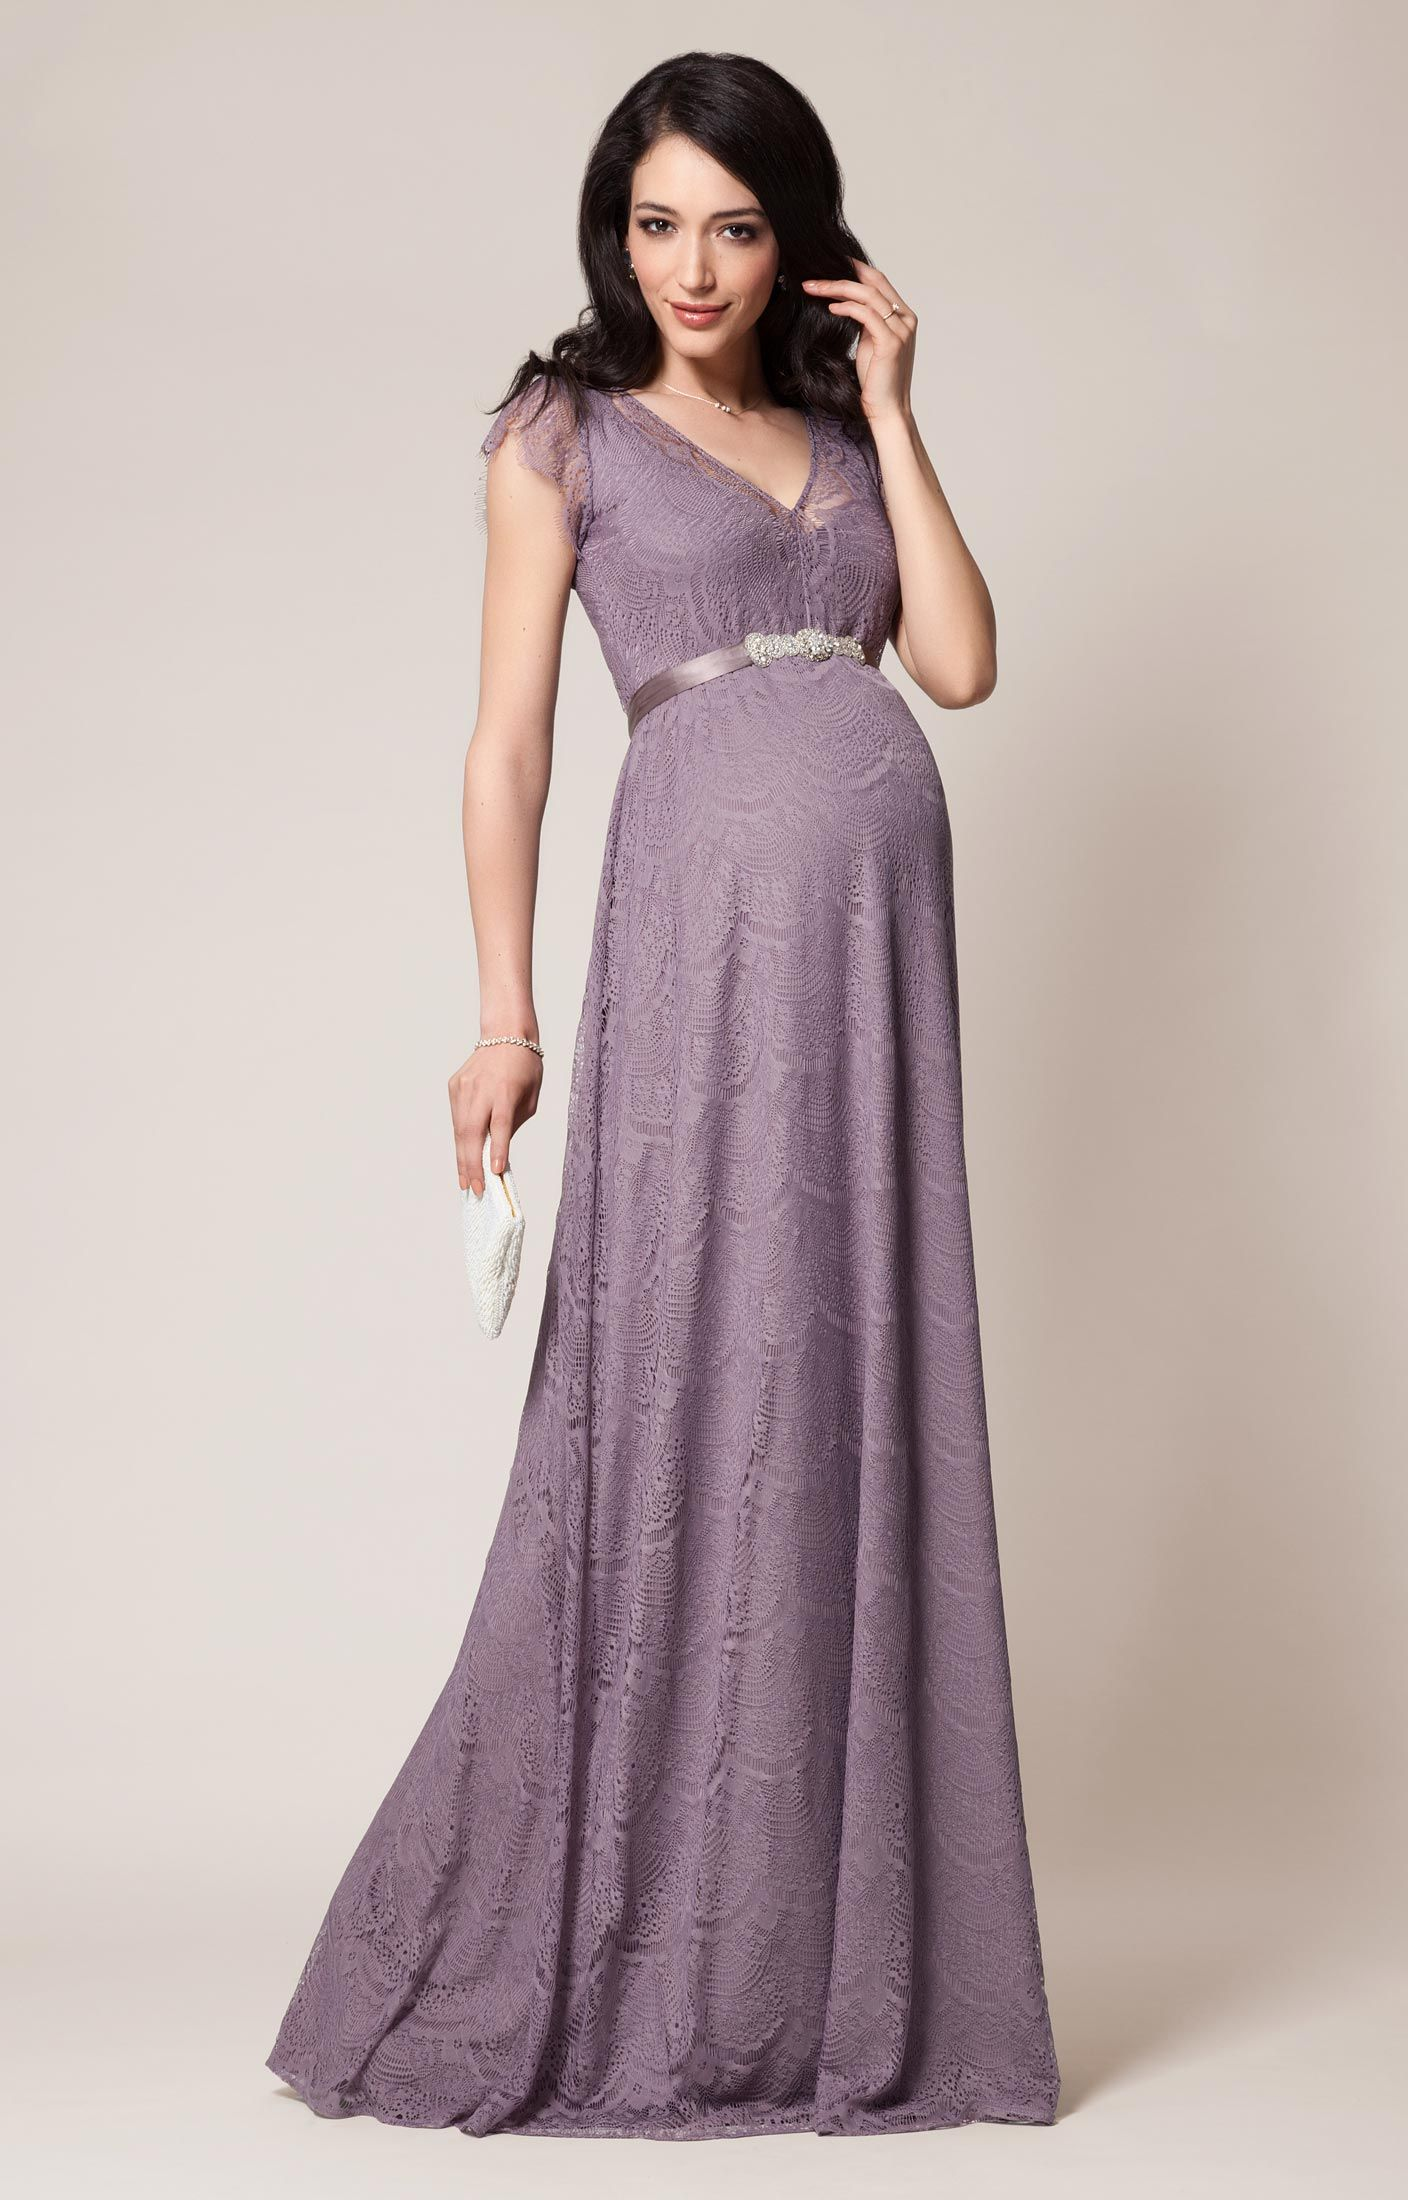 Kristin gown long maternity gowns wisteria and romantic kristin gown long purple maternity dressesmaternity ombrellifo Image collections